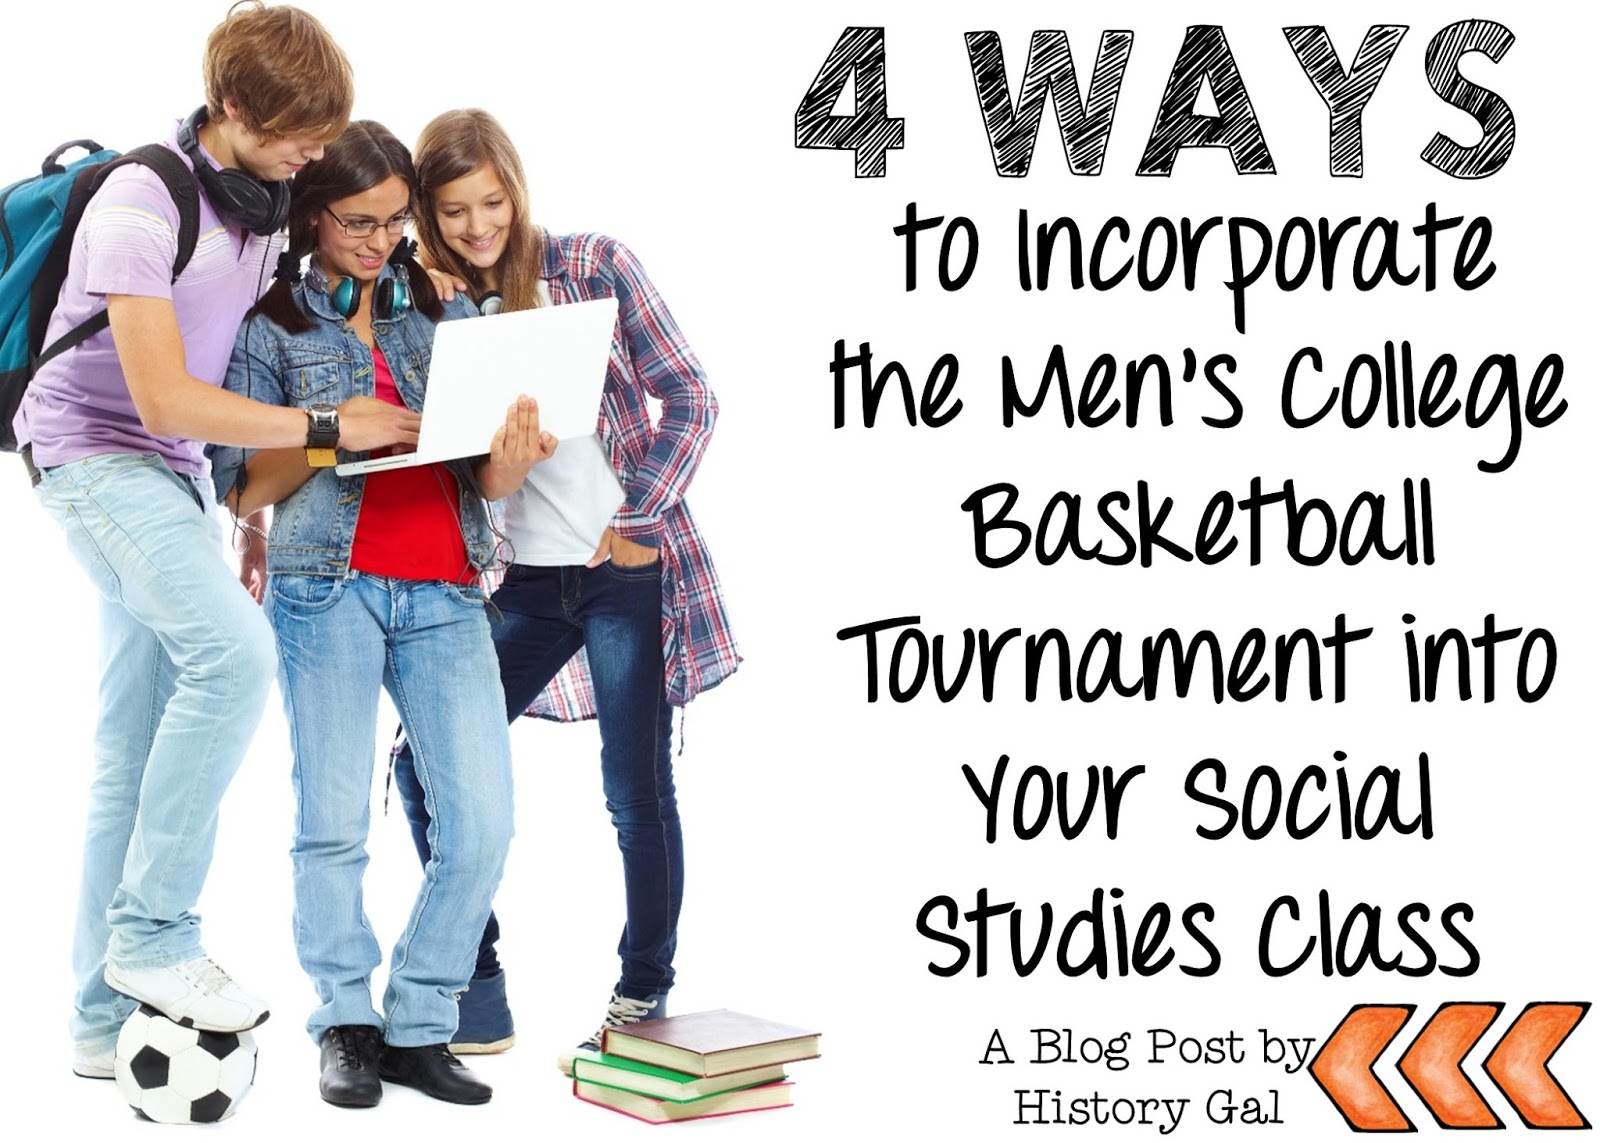 4 ways to incorporate the Men's college basketball tournament into your Social Studies class by History Gal